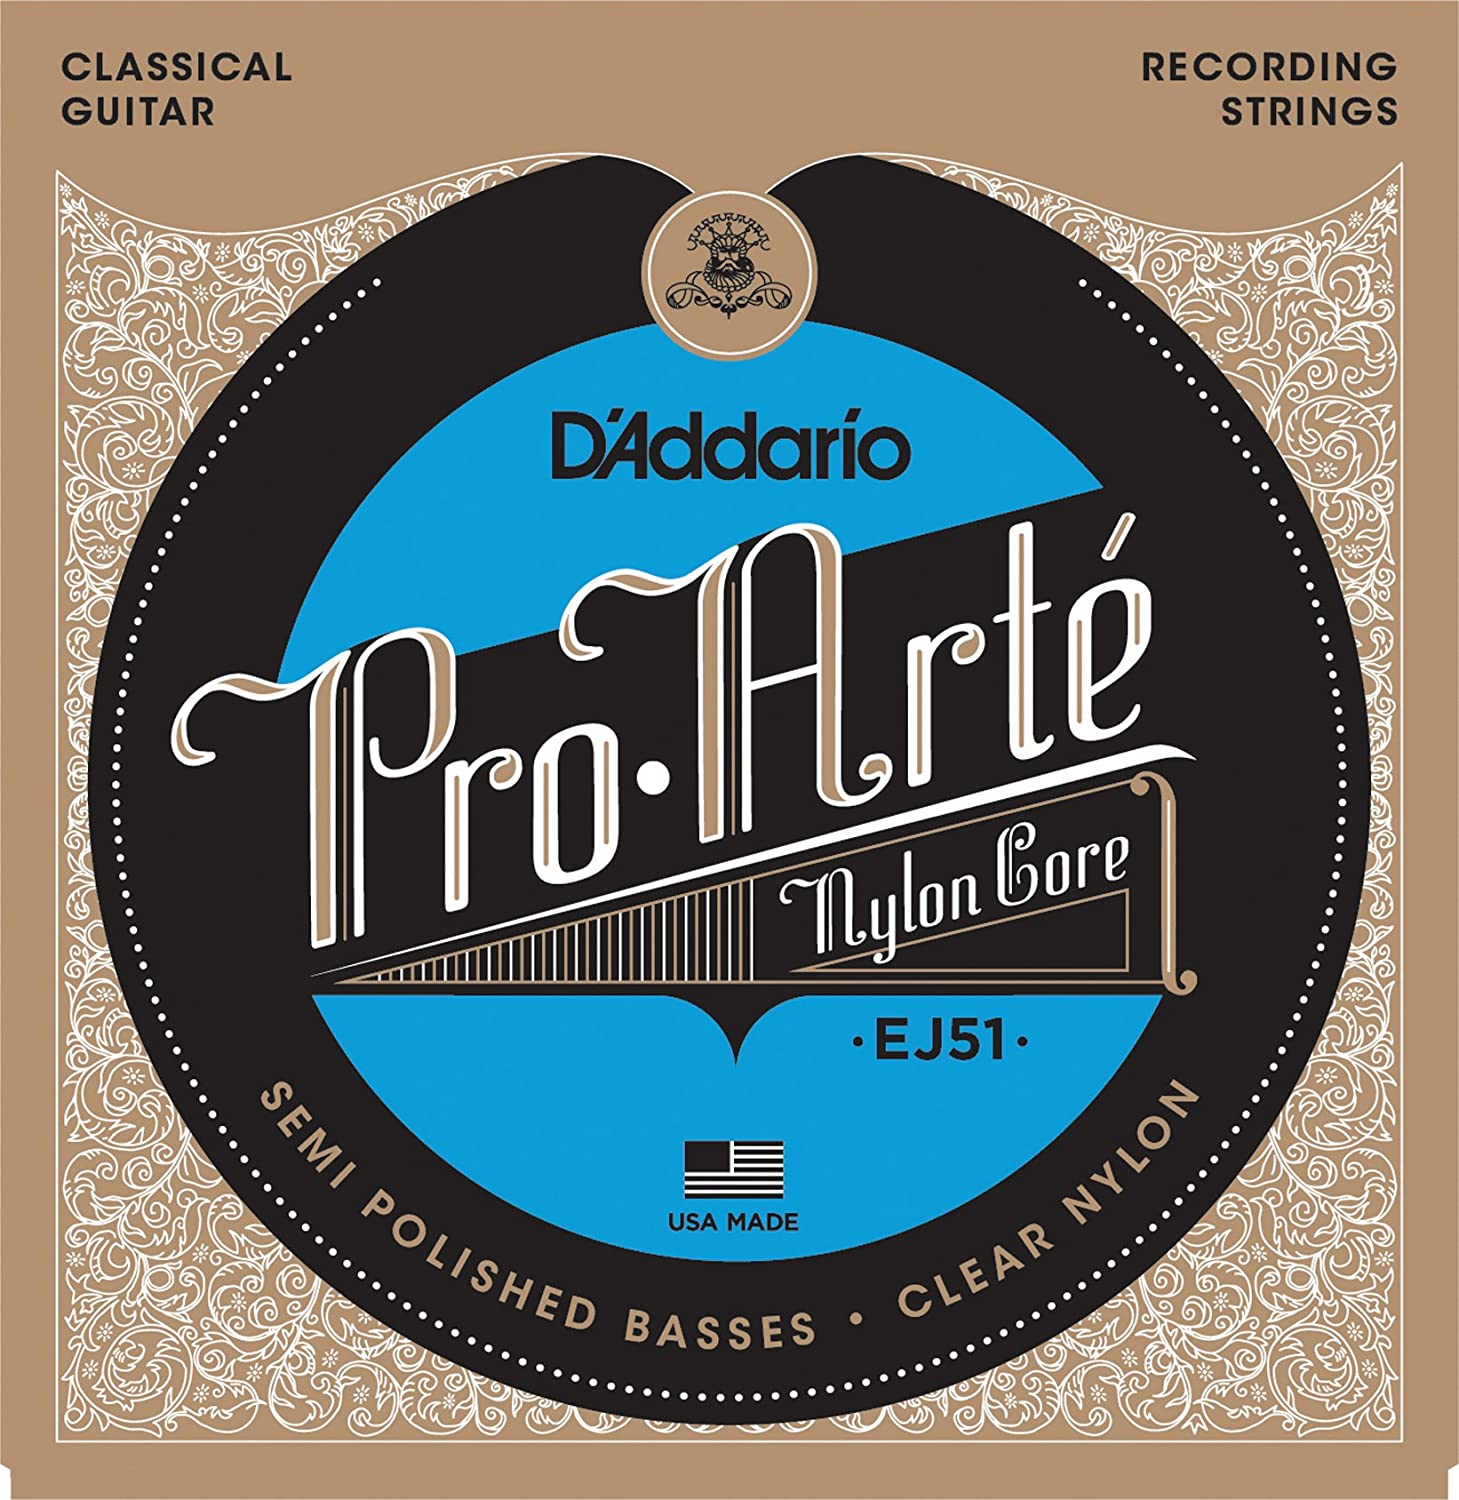 D'Addario EJ51 Pro-Arte Classical Guitar Strings with Polished Basses, Hard Tension D'Addario